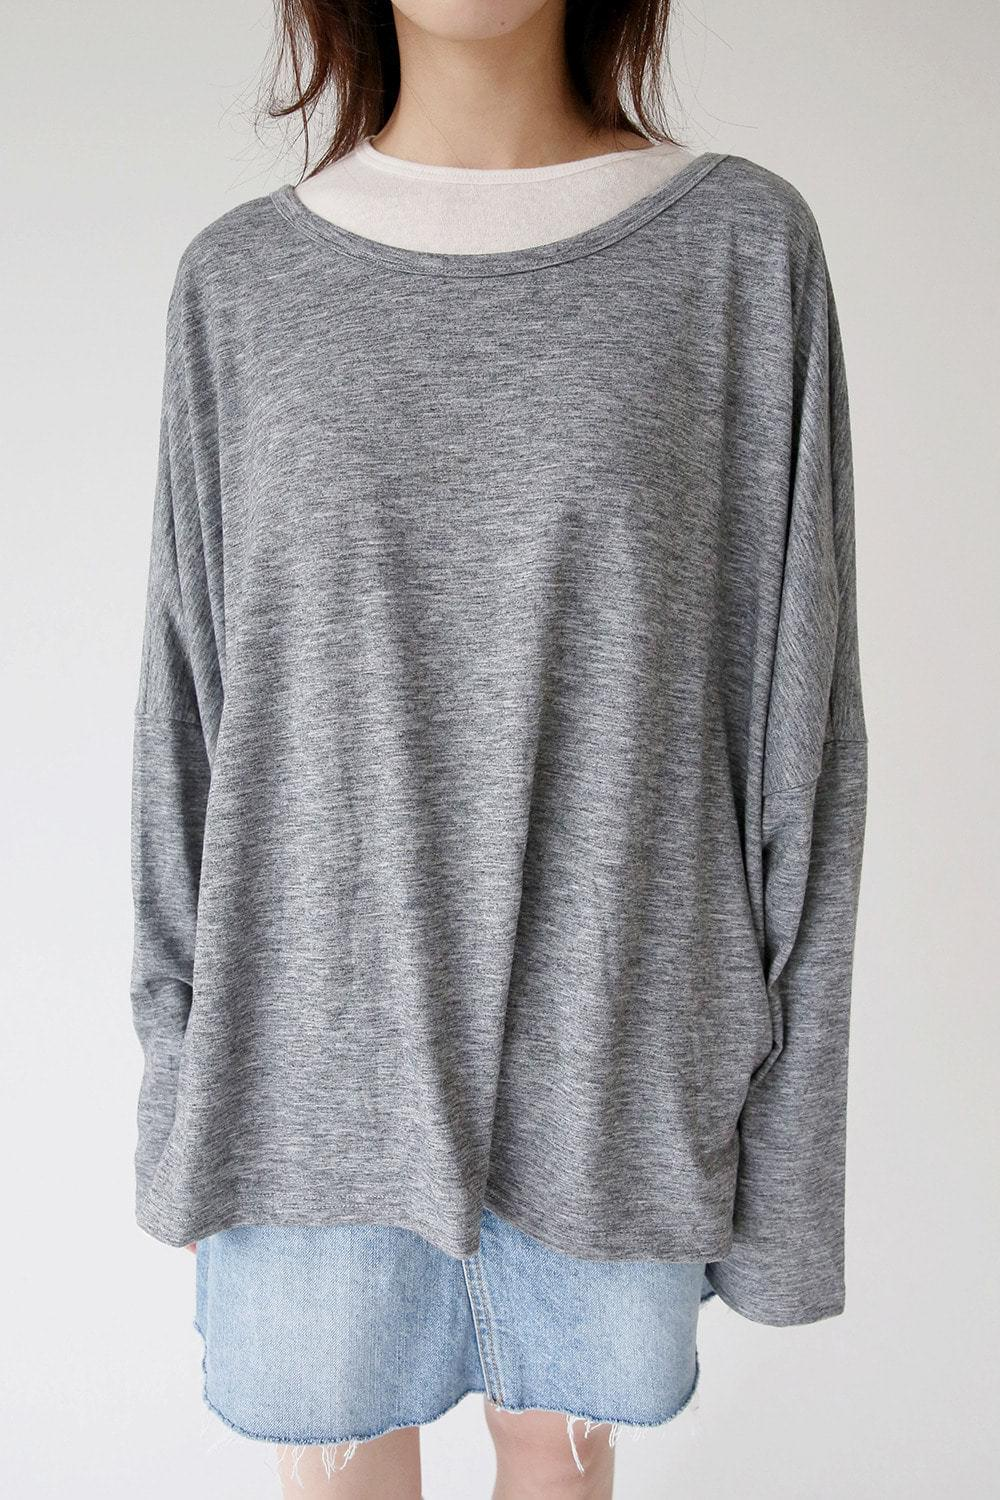 basic loose fit tee (3colors)